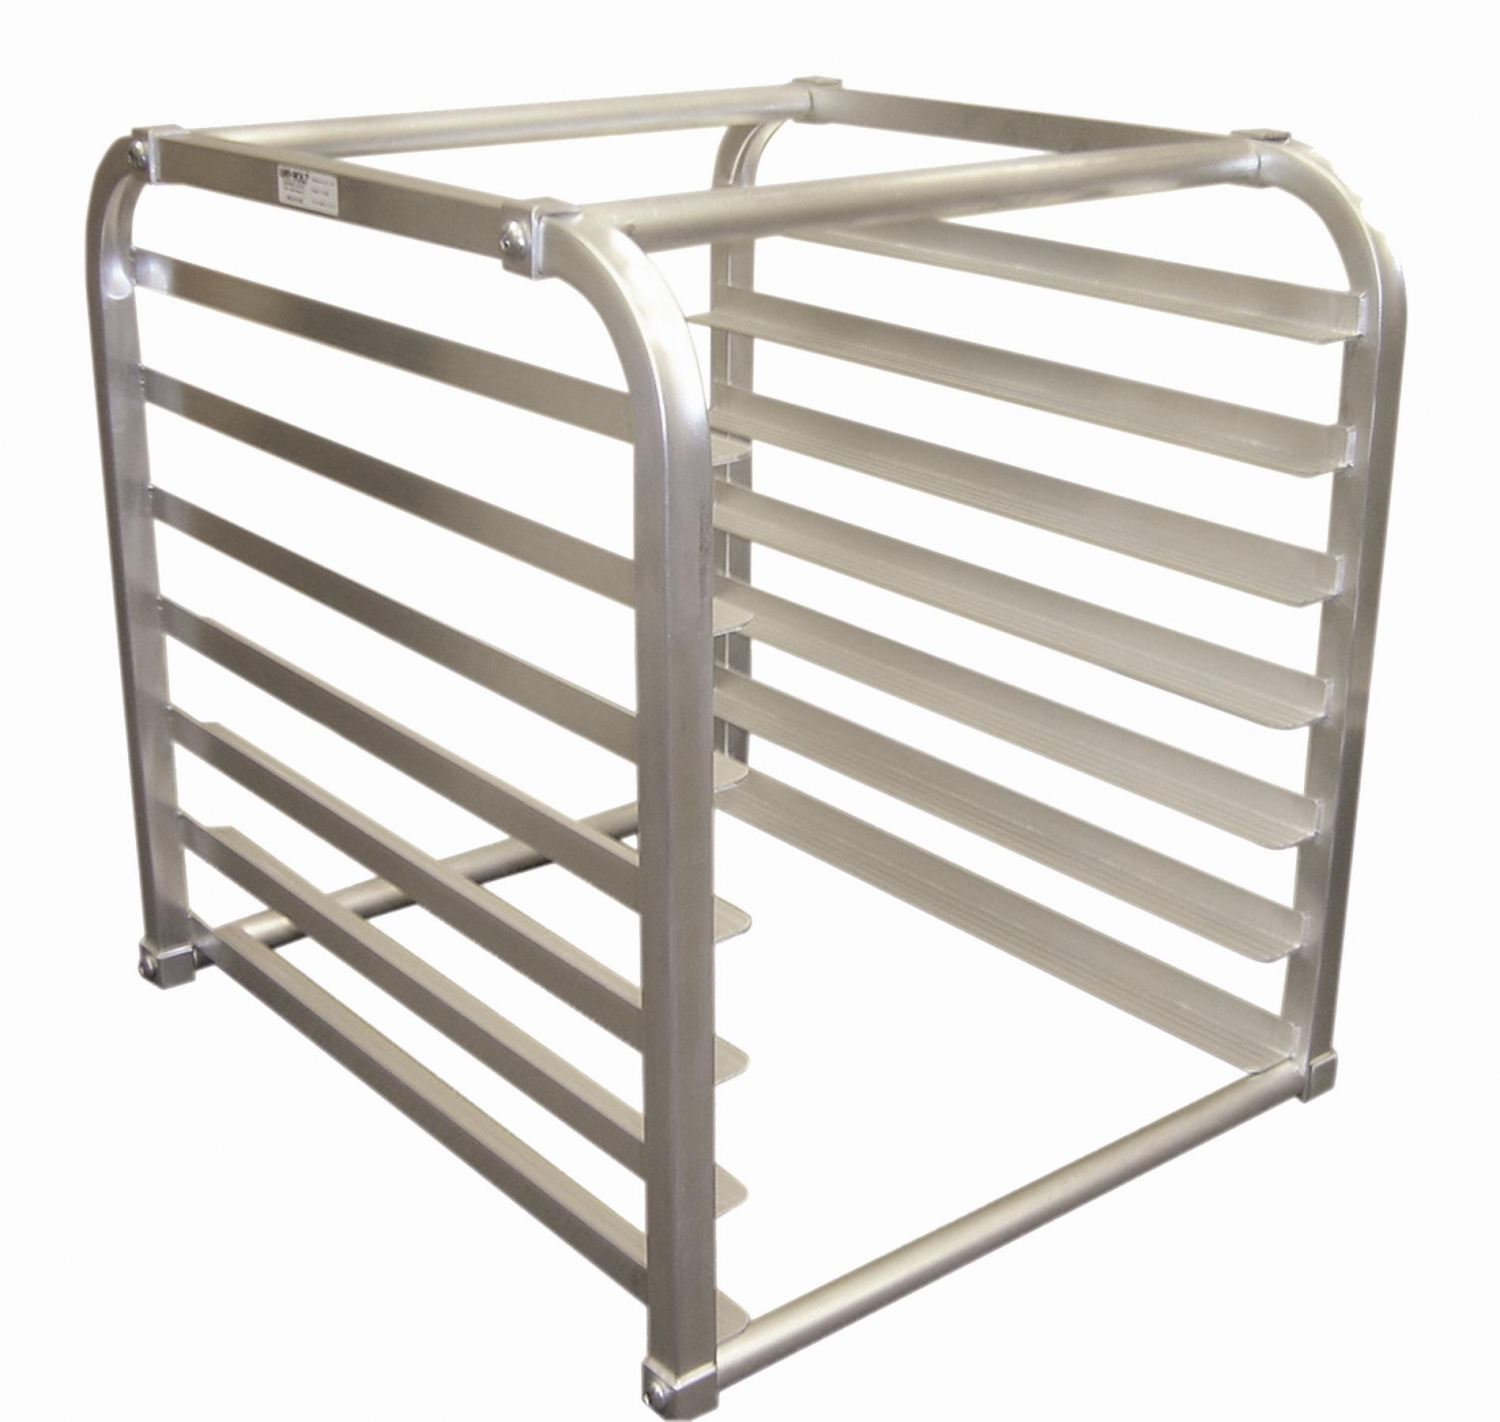 Win-Holt AL-1807-IR-KD 7-Pan Reach-In Refrigerator Insert Rack